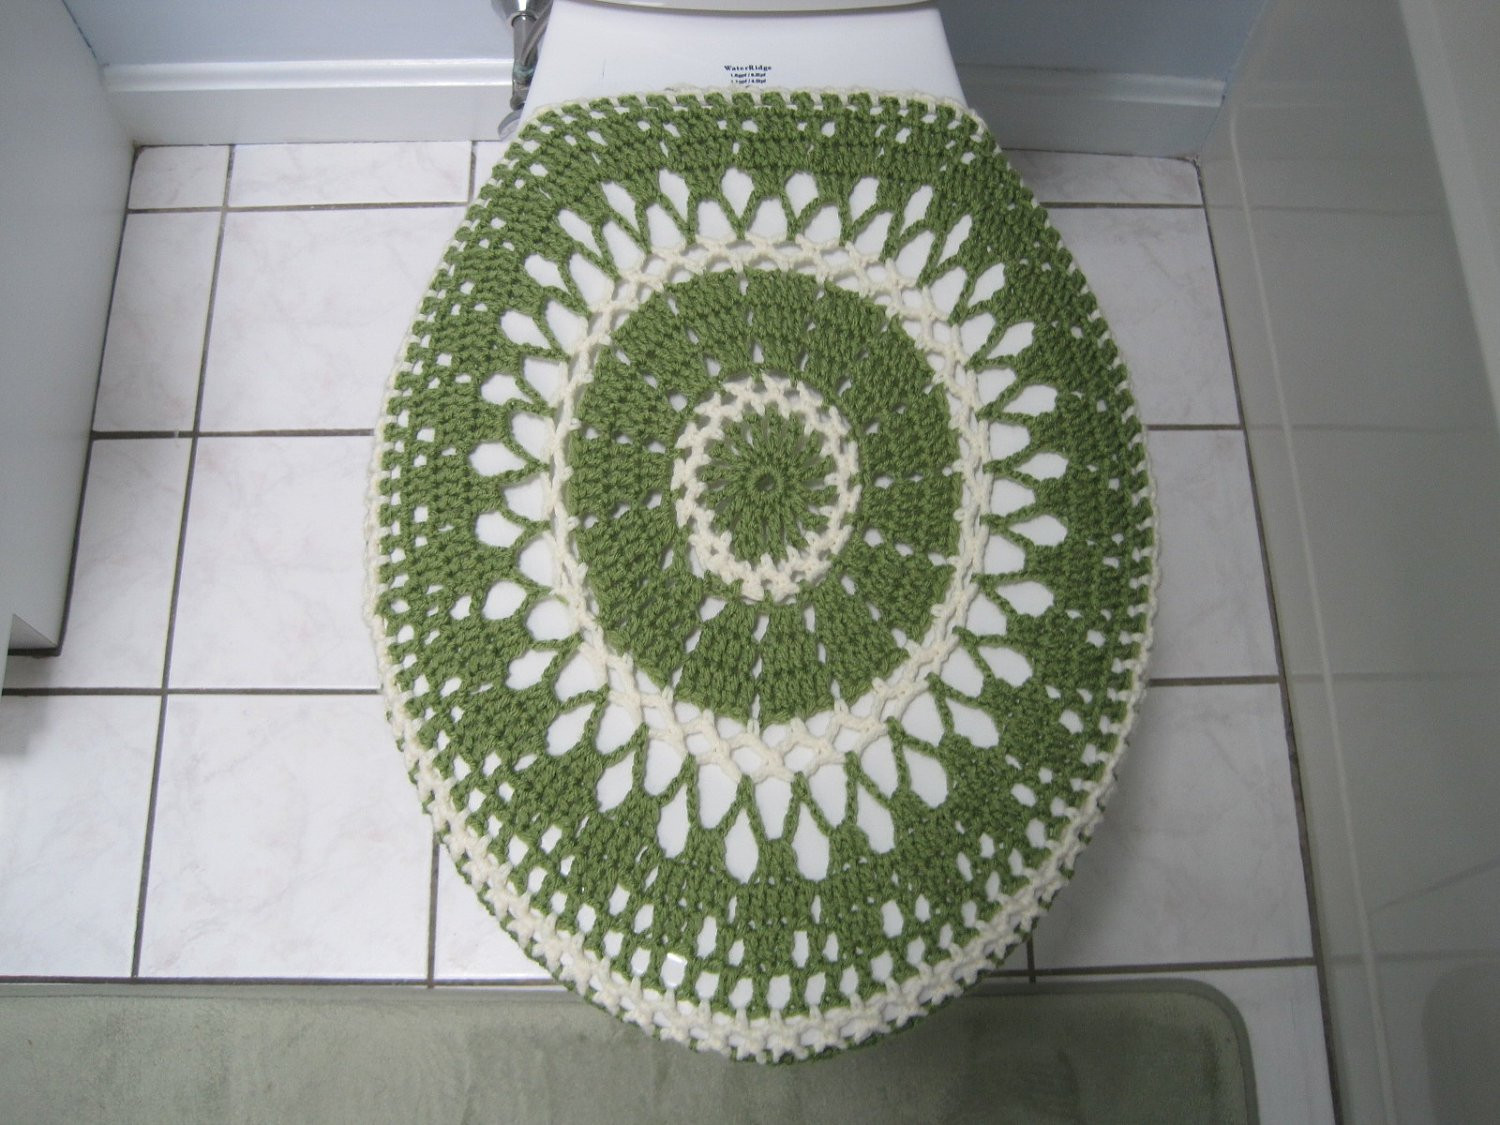 Elegant Crochet toilet Seat Cover or Crochet toilet Tank Lid Cover Crochet Seat Cover Of Beautiful Crochet Car Front Seat Cover Aran Grey Heather Ccfsc1a Crochet Seat Cover